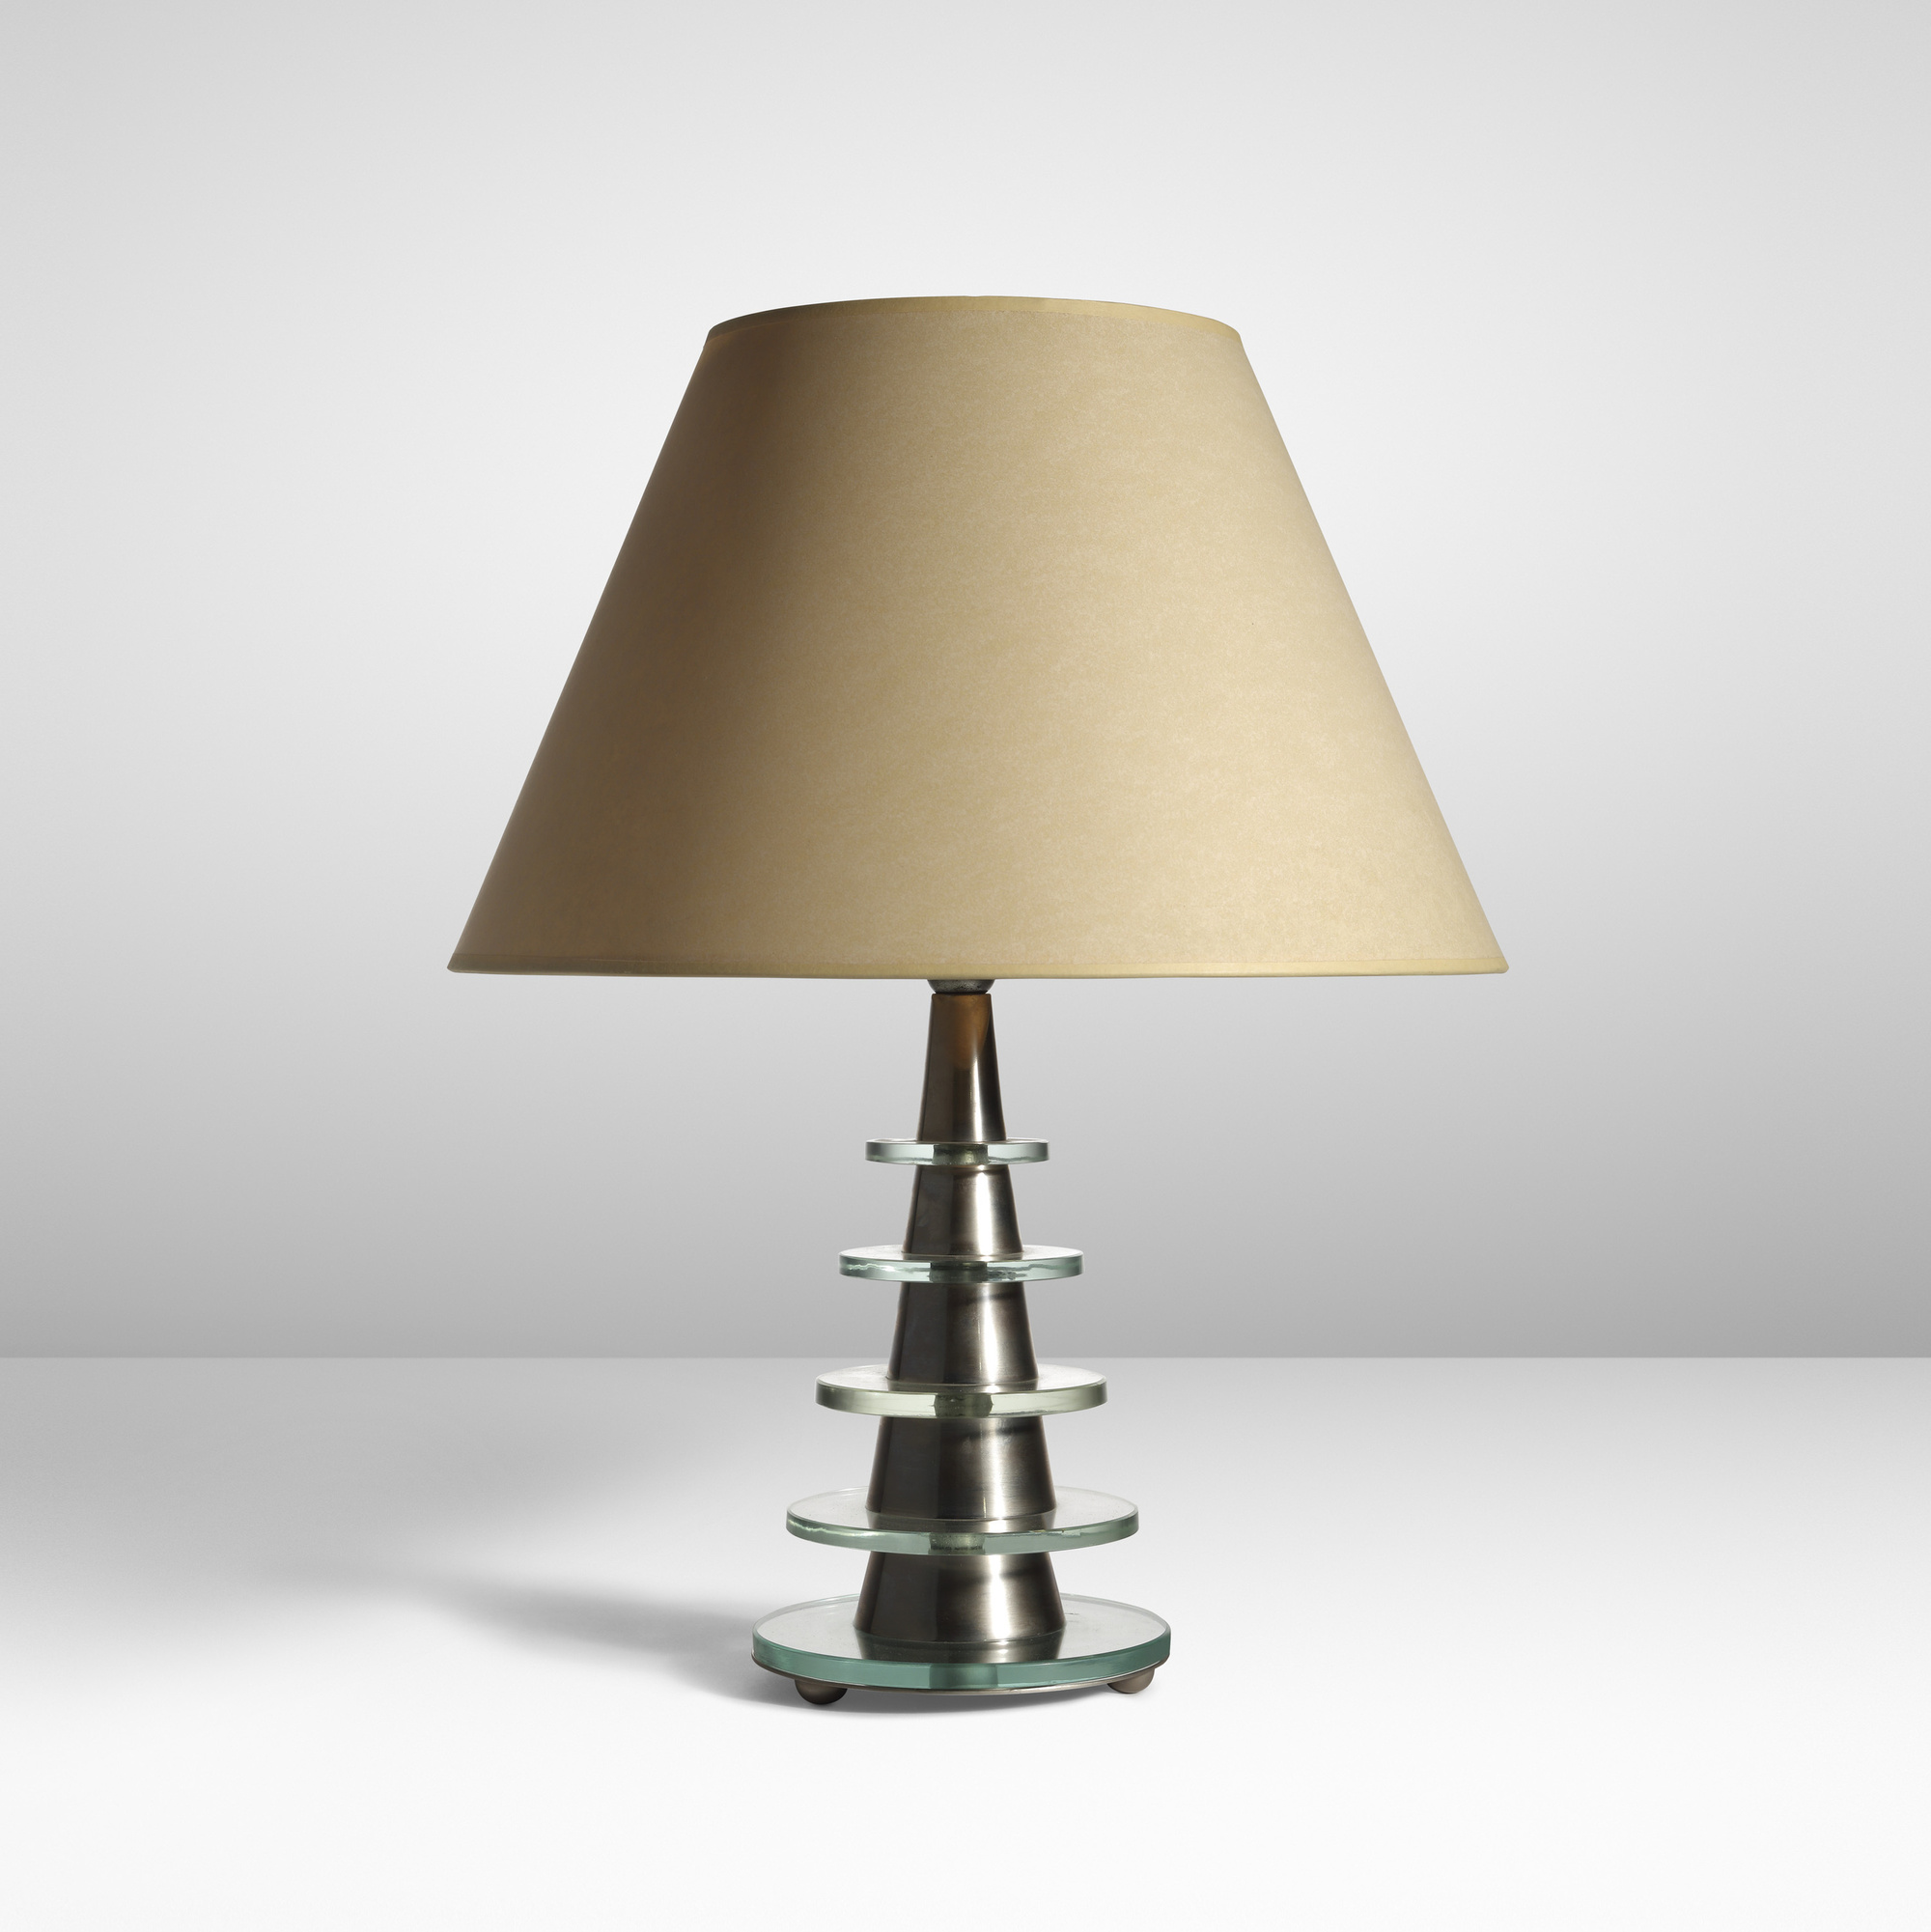 6: Maison Desny / Rare table lamp (1 of 2)